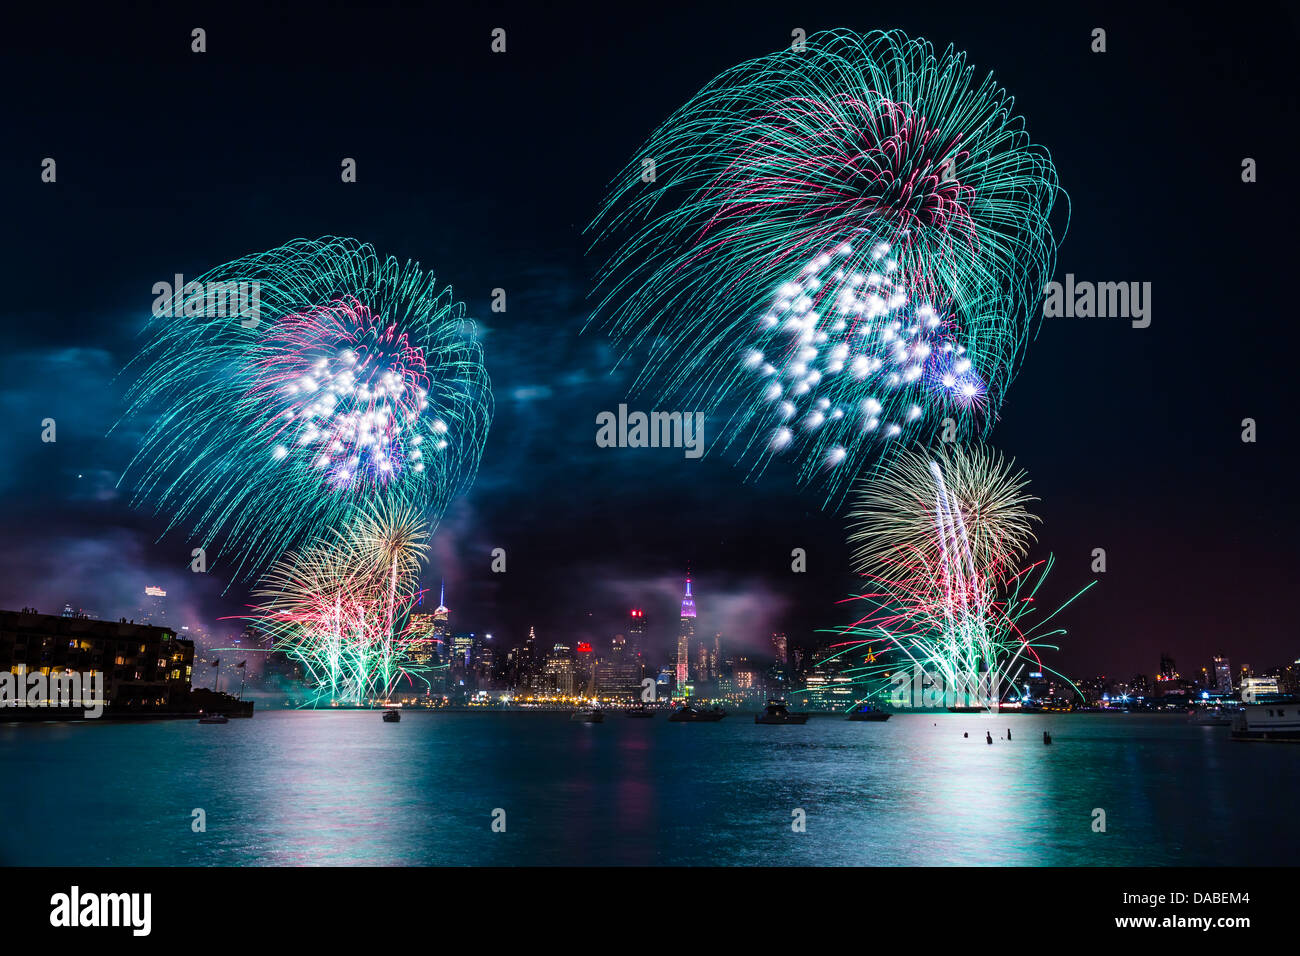 Macy's 4th of July fireworks on the Hudson river with the Manhattan skyline and the Empire State Building in - Stock Image